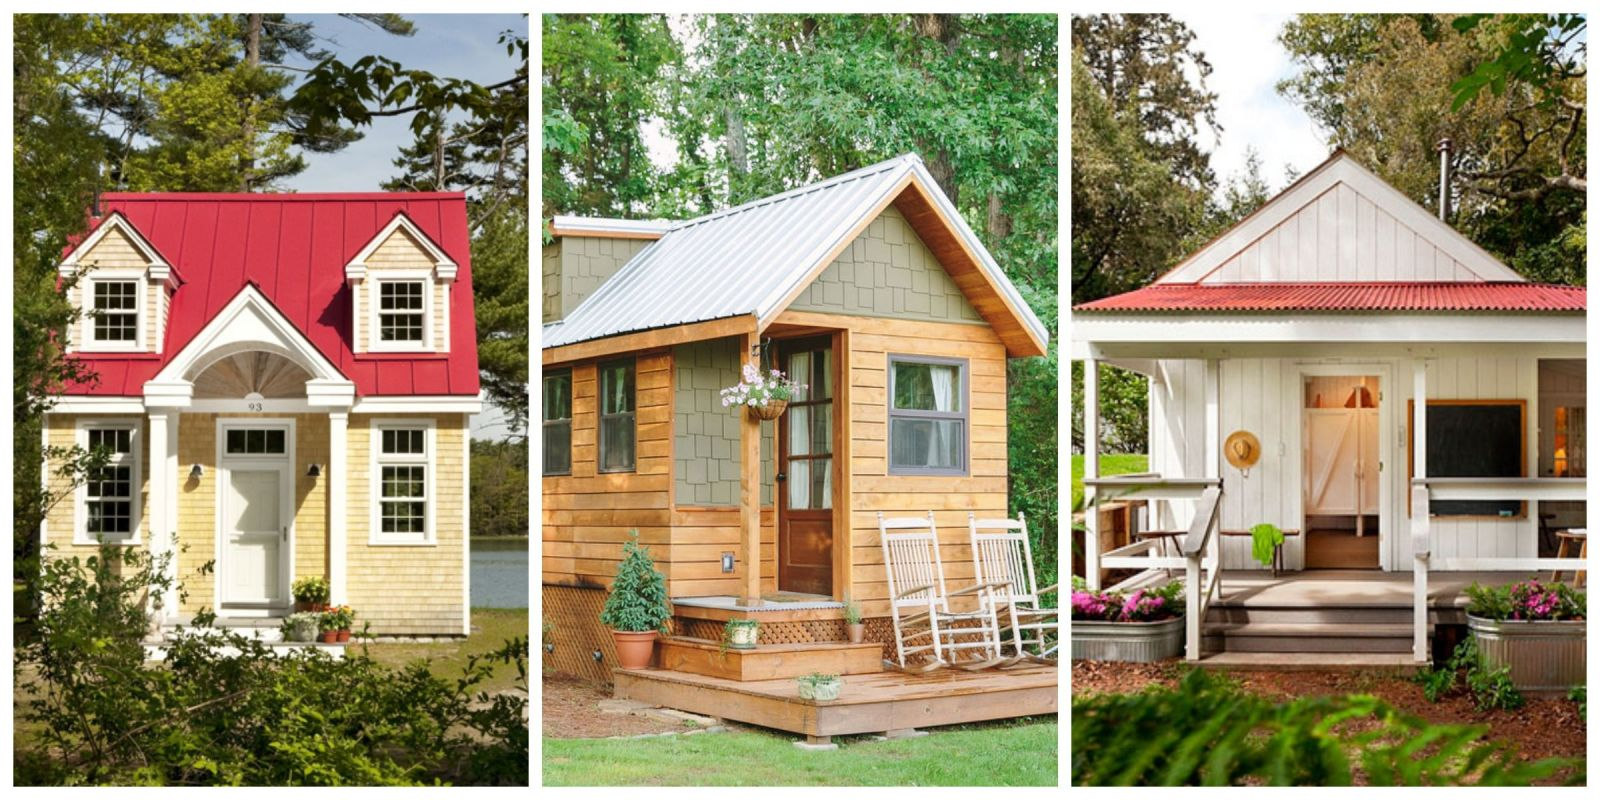 Stupendous 60 Best Tiny Houses 2017 Small House Pictures Plans Largest Home Design Picture Inspirations Pitcheantrous